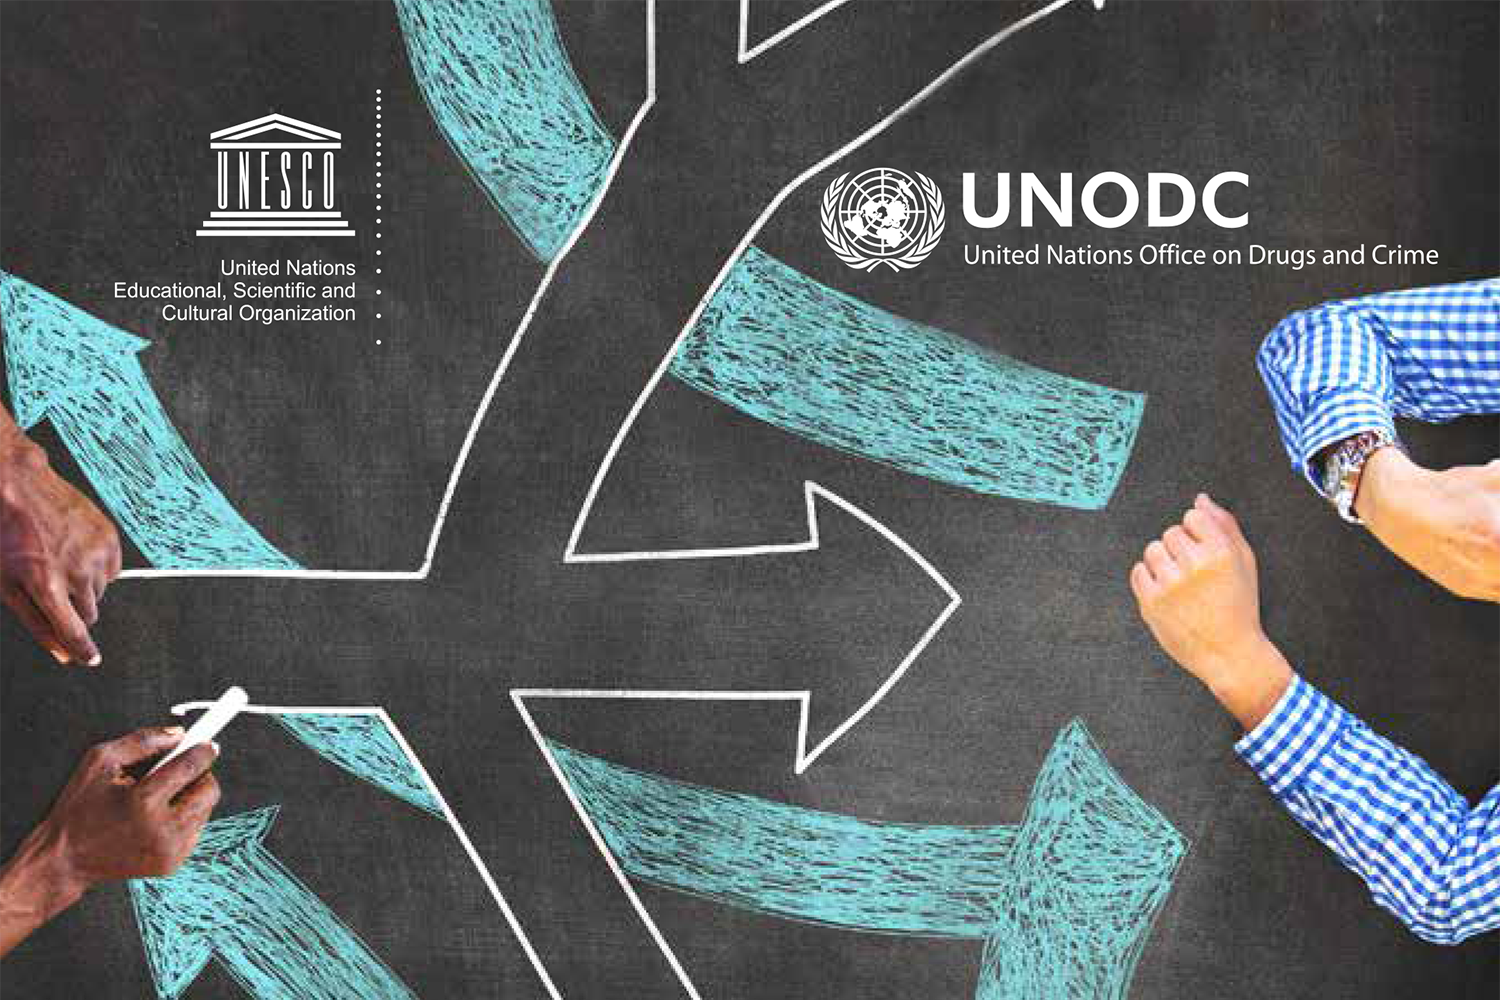 UNODC and UNESCO jointly strengthening rule of law through education